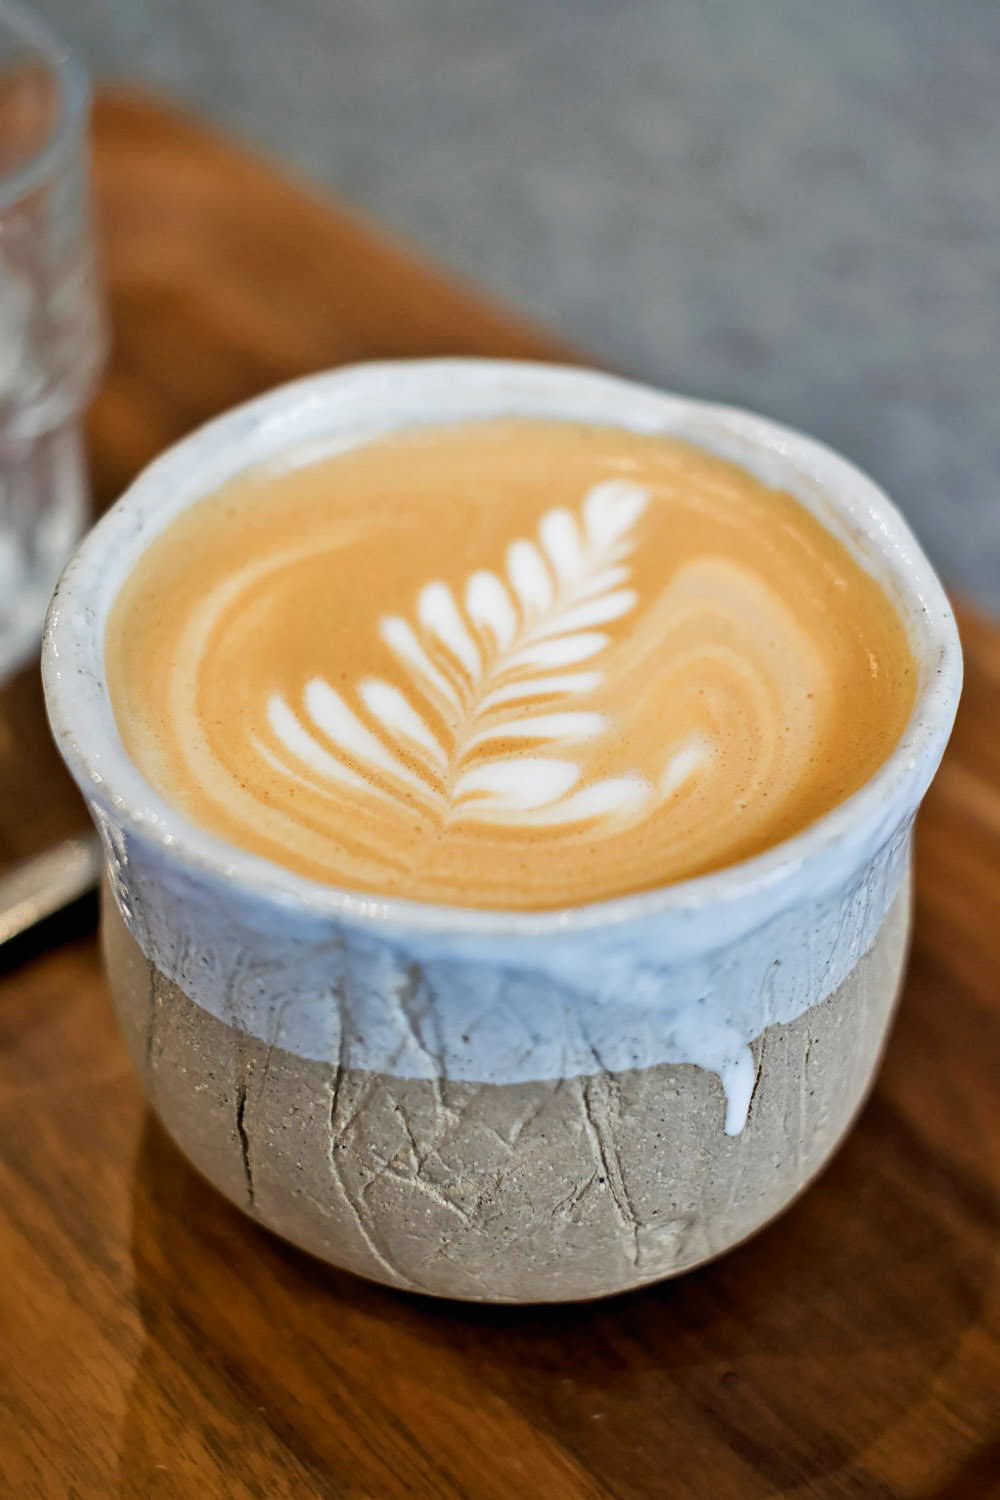 Flat White at Tab x Tab, an independent coffee shop in Westbourne Grove London